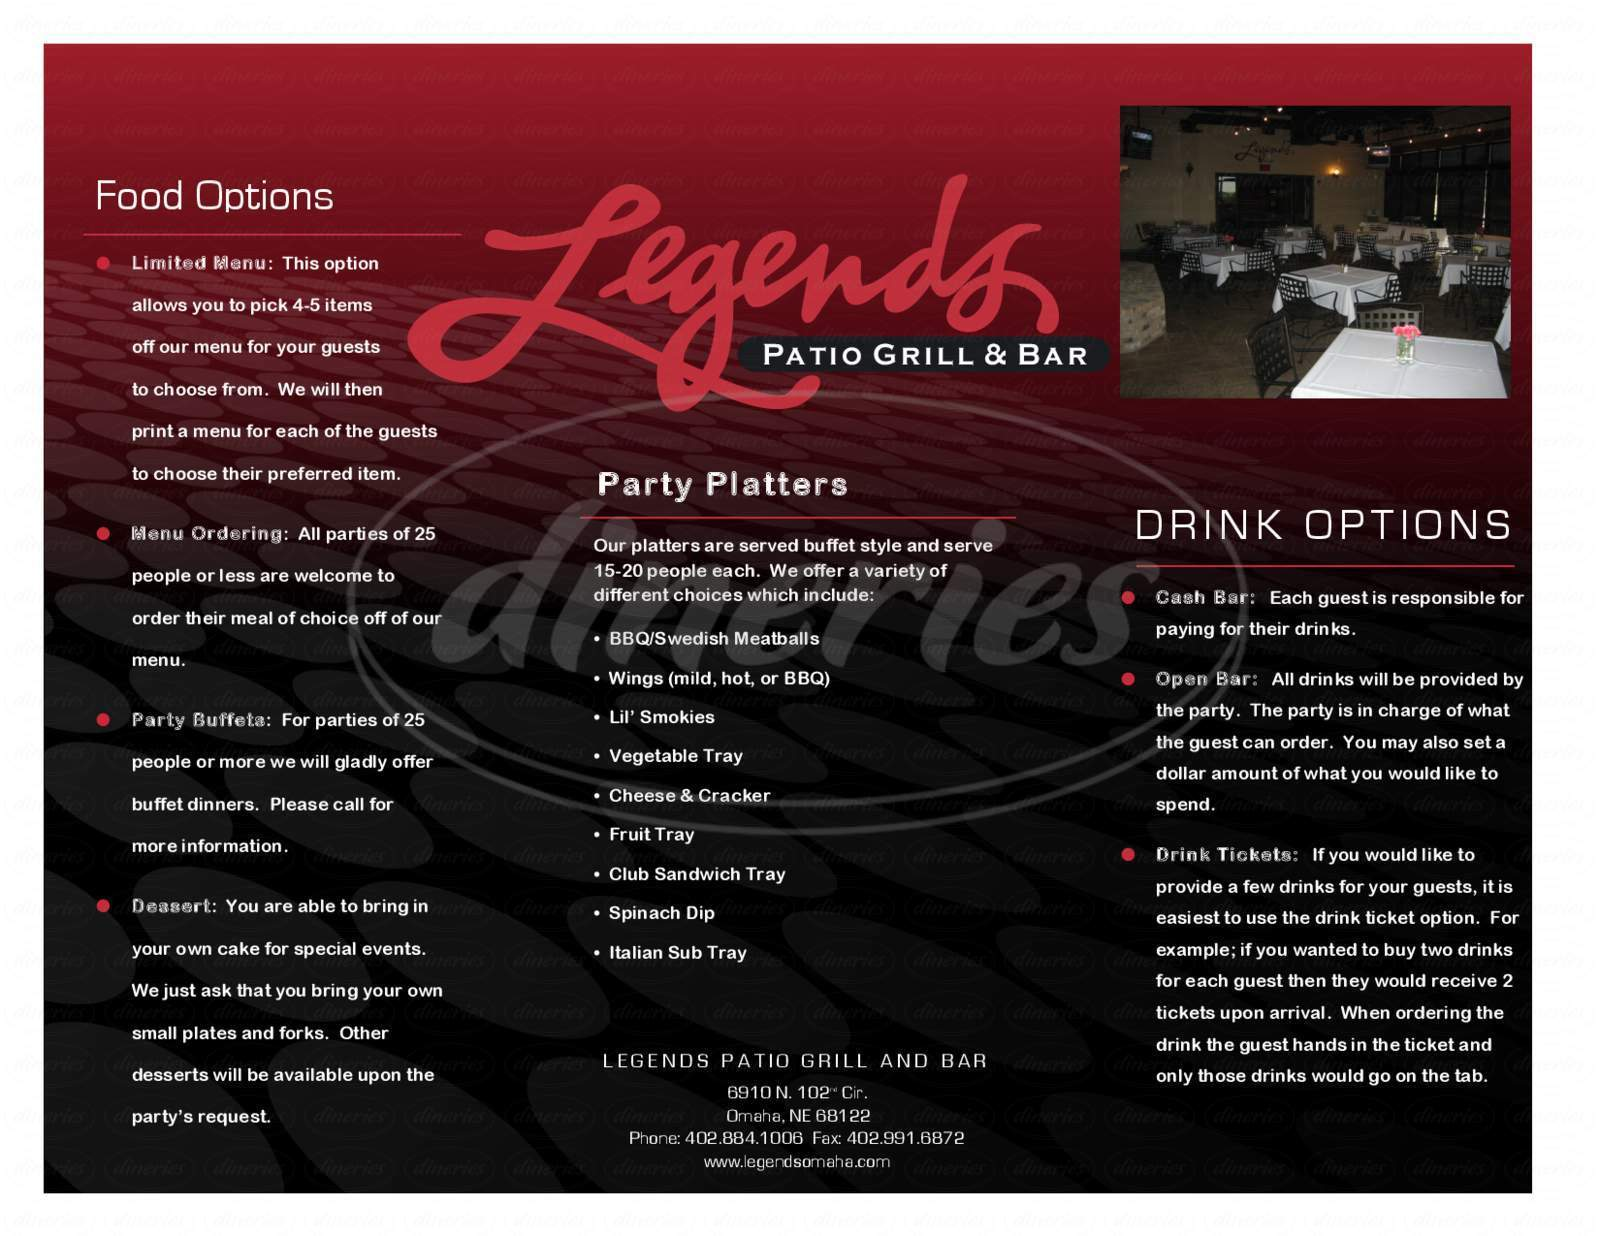 menu for Legends Patio Grill & Bar